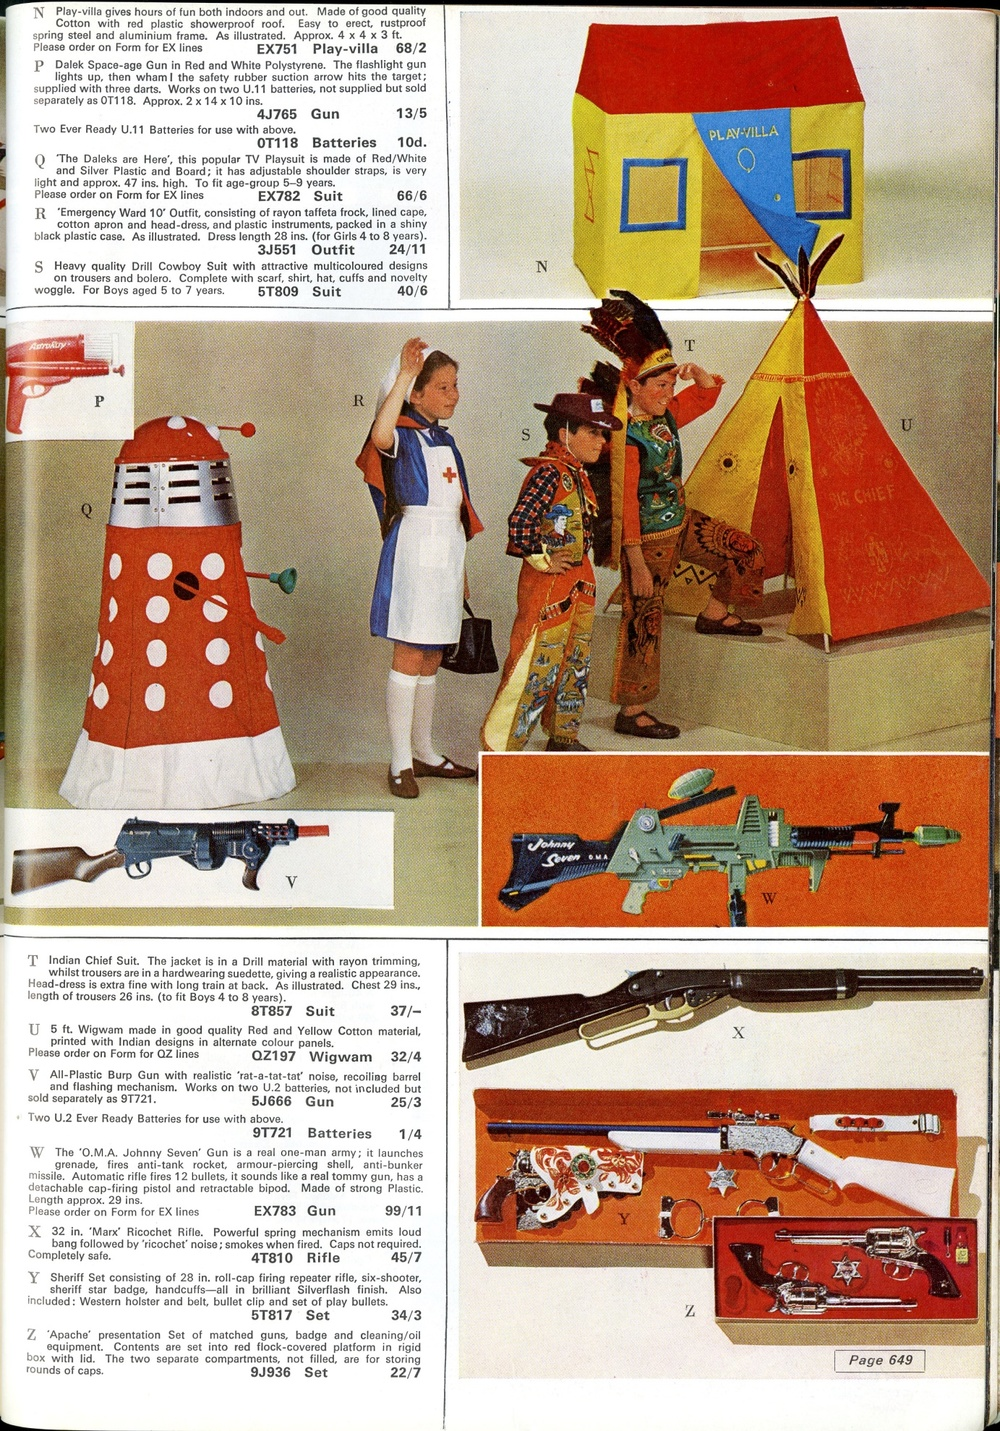 Berwick's Toy Co. Ltd., ad. for Dalek playsuit in the 1965 Grattans catalogue